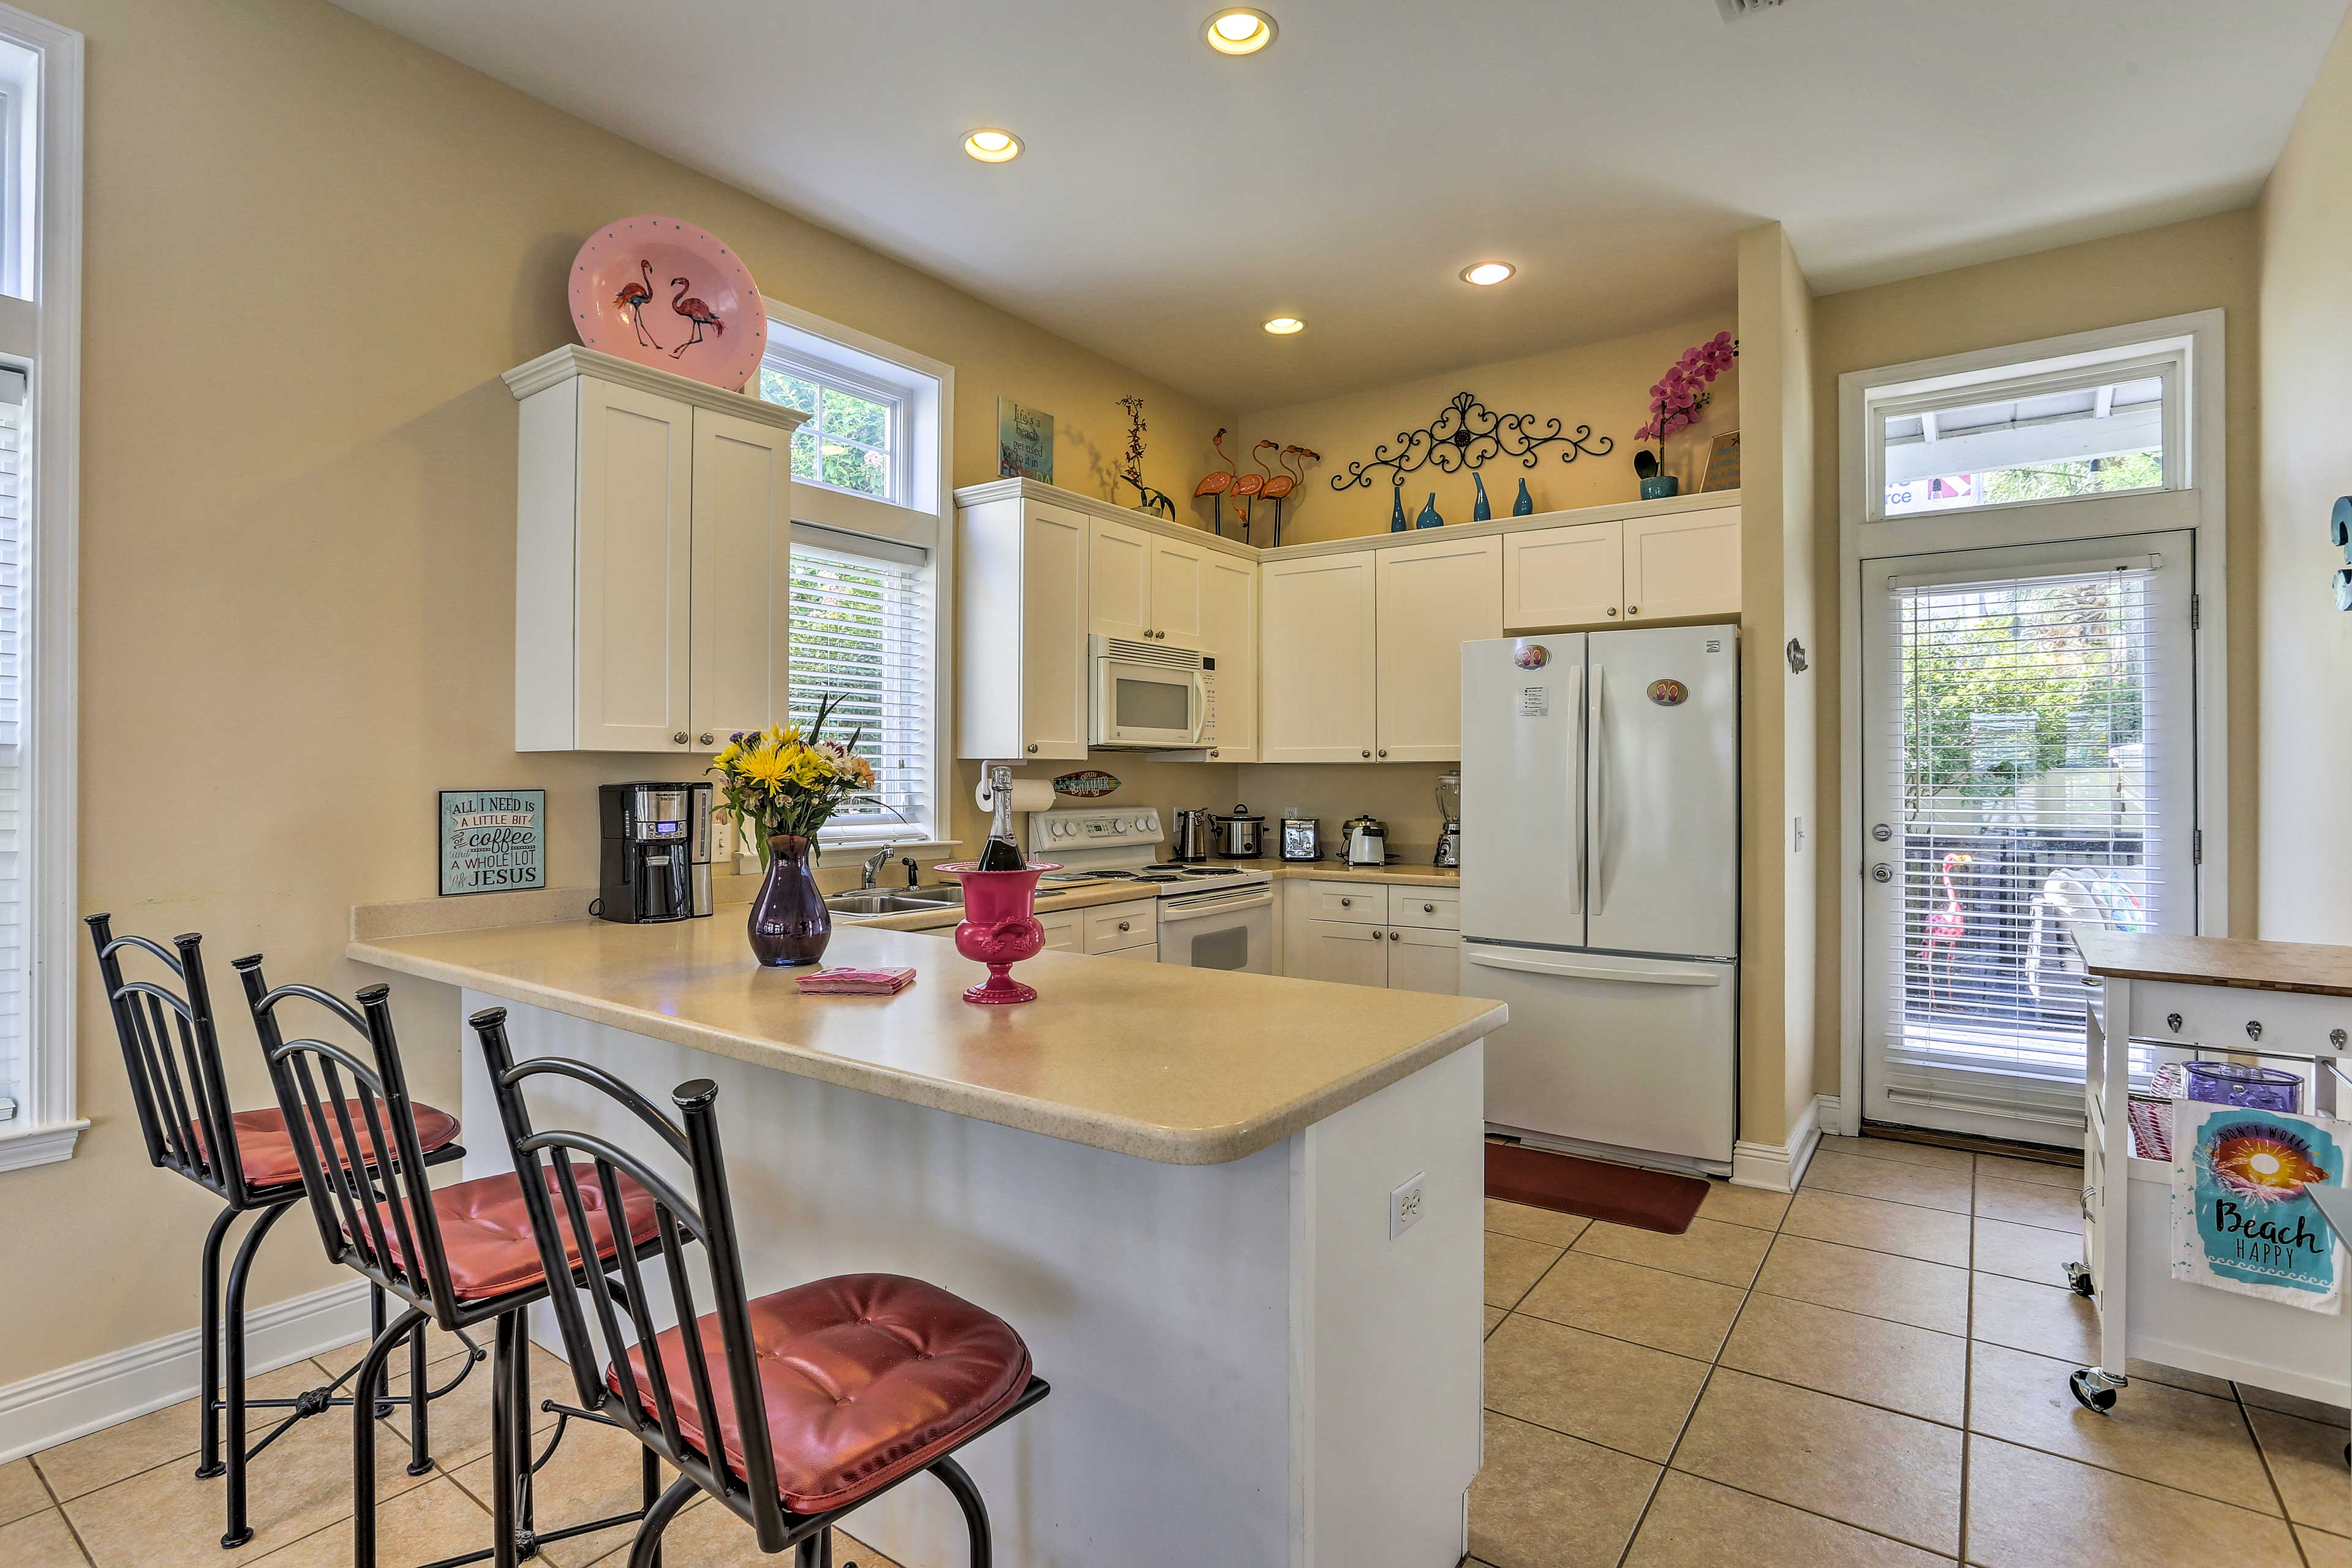 Grab a spot at the 4-person breakfast bar to snack and visit.